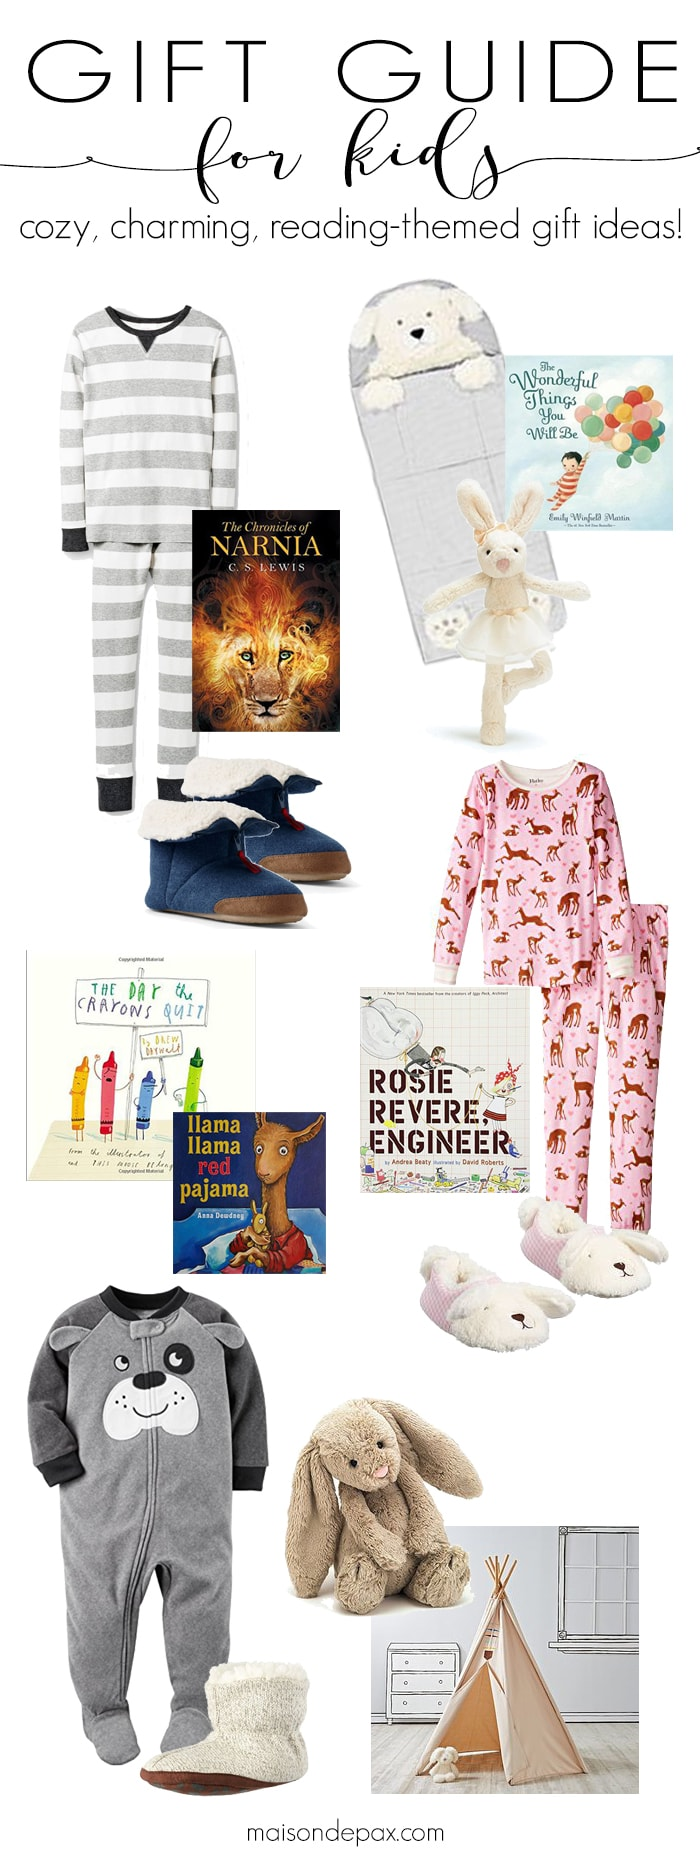 Bedtime and Books: pajamas, story books, and other cozy Christmas gift ideas for kids #kidsgifts